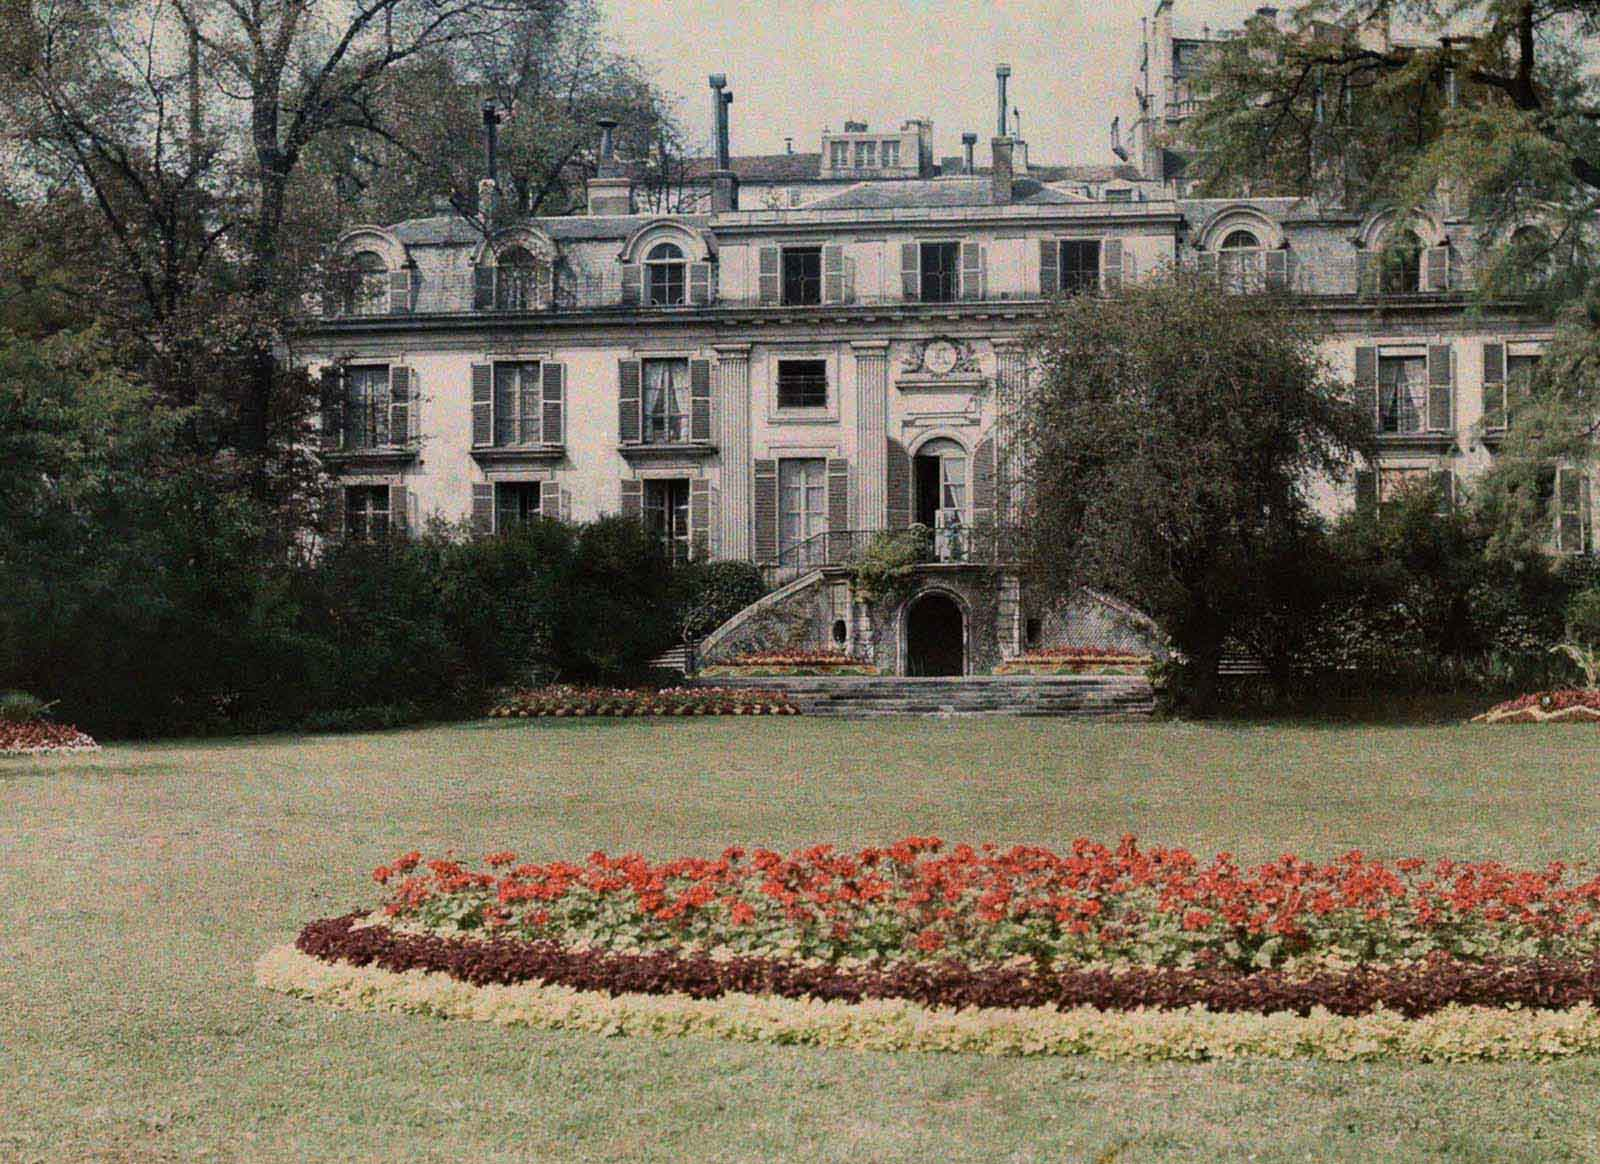 The hotel of Madame de Lamballe, a friend of Marie-Antoinette.